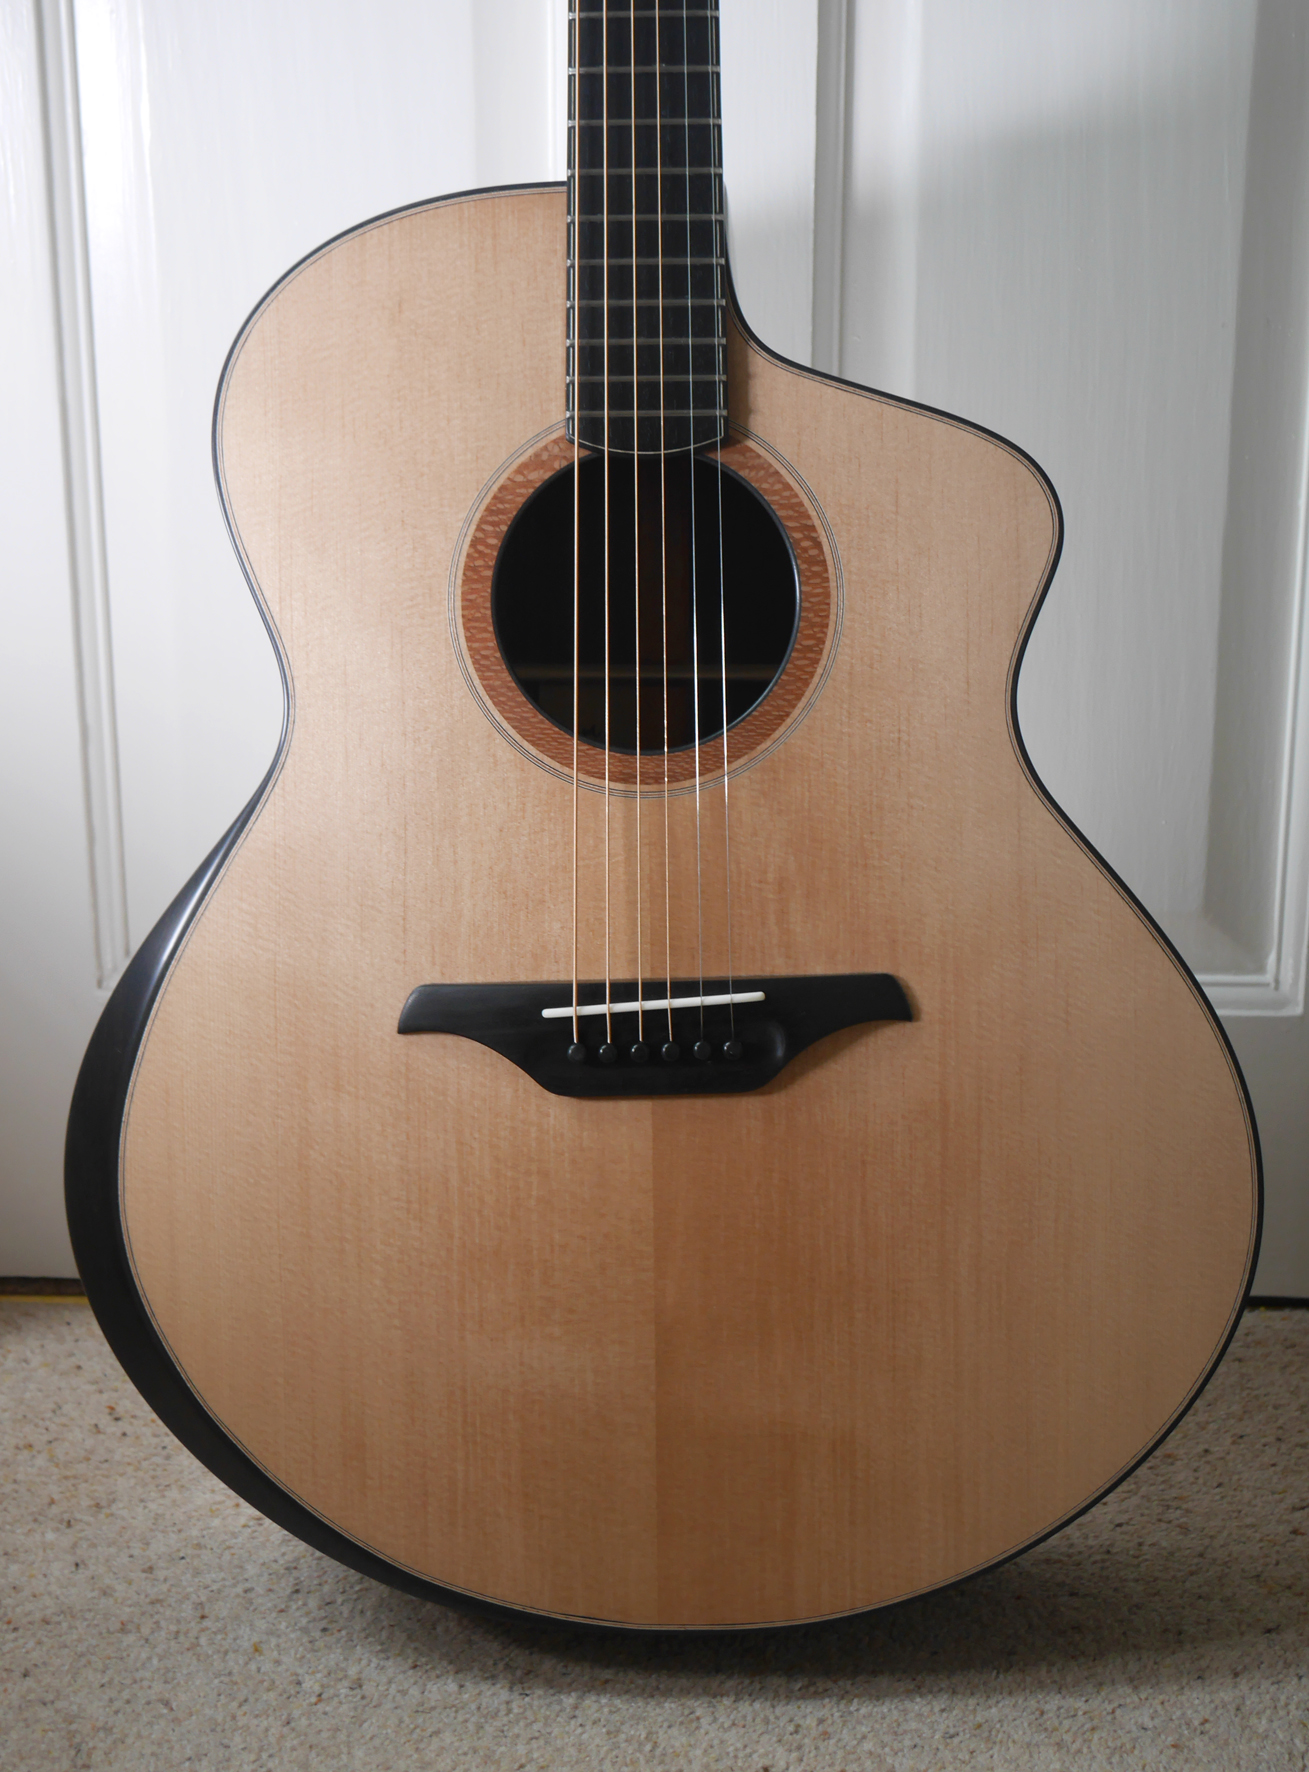 andreas montgomery, jumbo, bevel, acoustic guitar, handmade, montgomery guitars, luthier